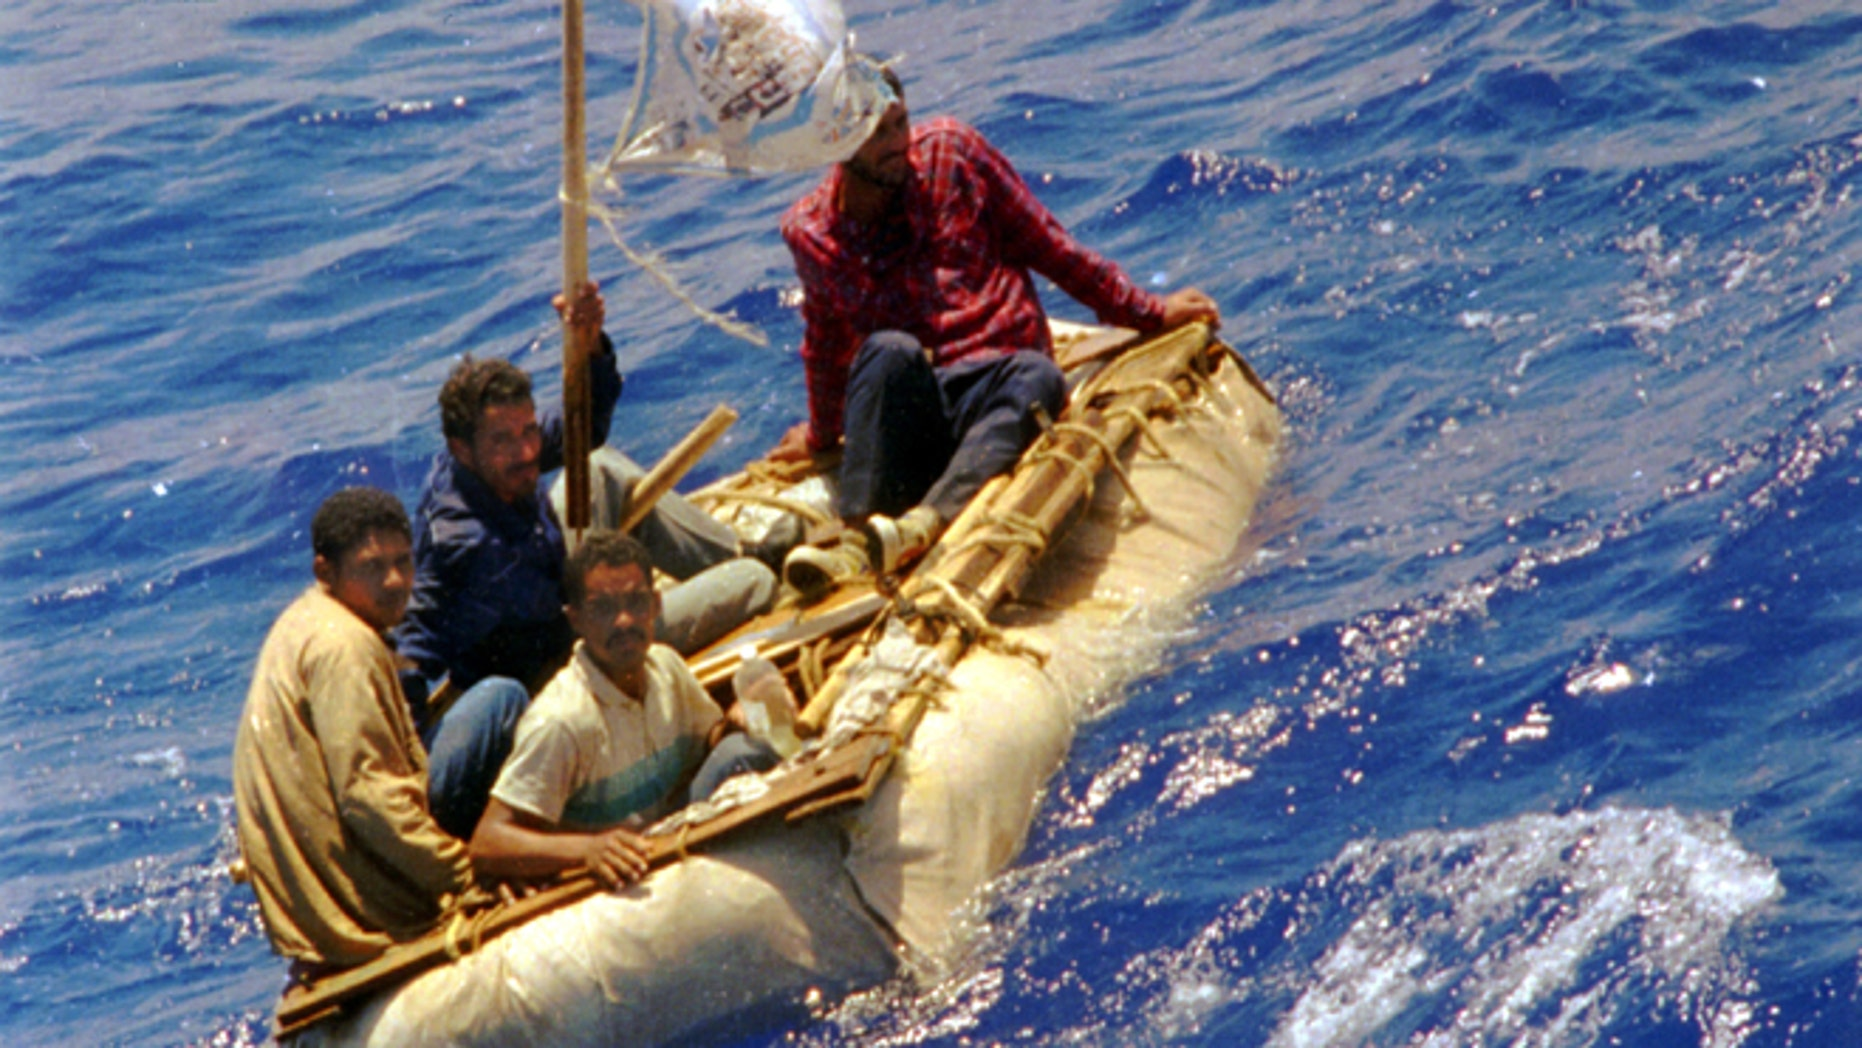 FILE --In this Aug. 26, 1994 file photo, Cuban refugees float in heavy seas 60 miles south of Key West, Fla. In the 20 years since Fidel Castro set off a high-seas humanitarian crisis by encouraging an exodus of 35,000 islanders, more than 26,000 other Cubans have risked their lives crossing the Florida Straits. Already this year, nearly 3,000 have been picked up by U.S. authorities, on a pace to double last years total. Experts say it shows the limits of the wet-foot, dry-foot policy that solved the 1994 crisis. (AP Photo/Dave Martin, File)